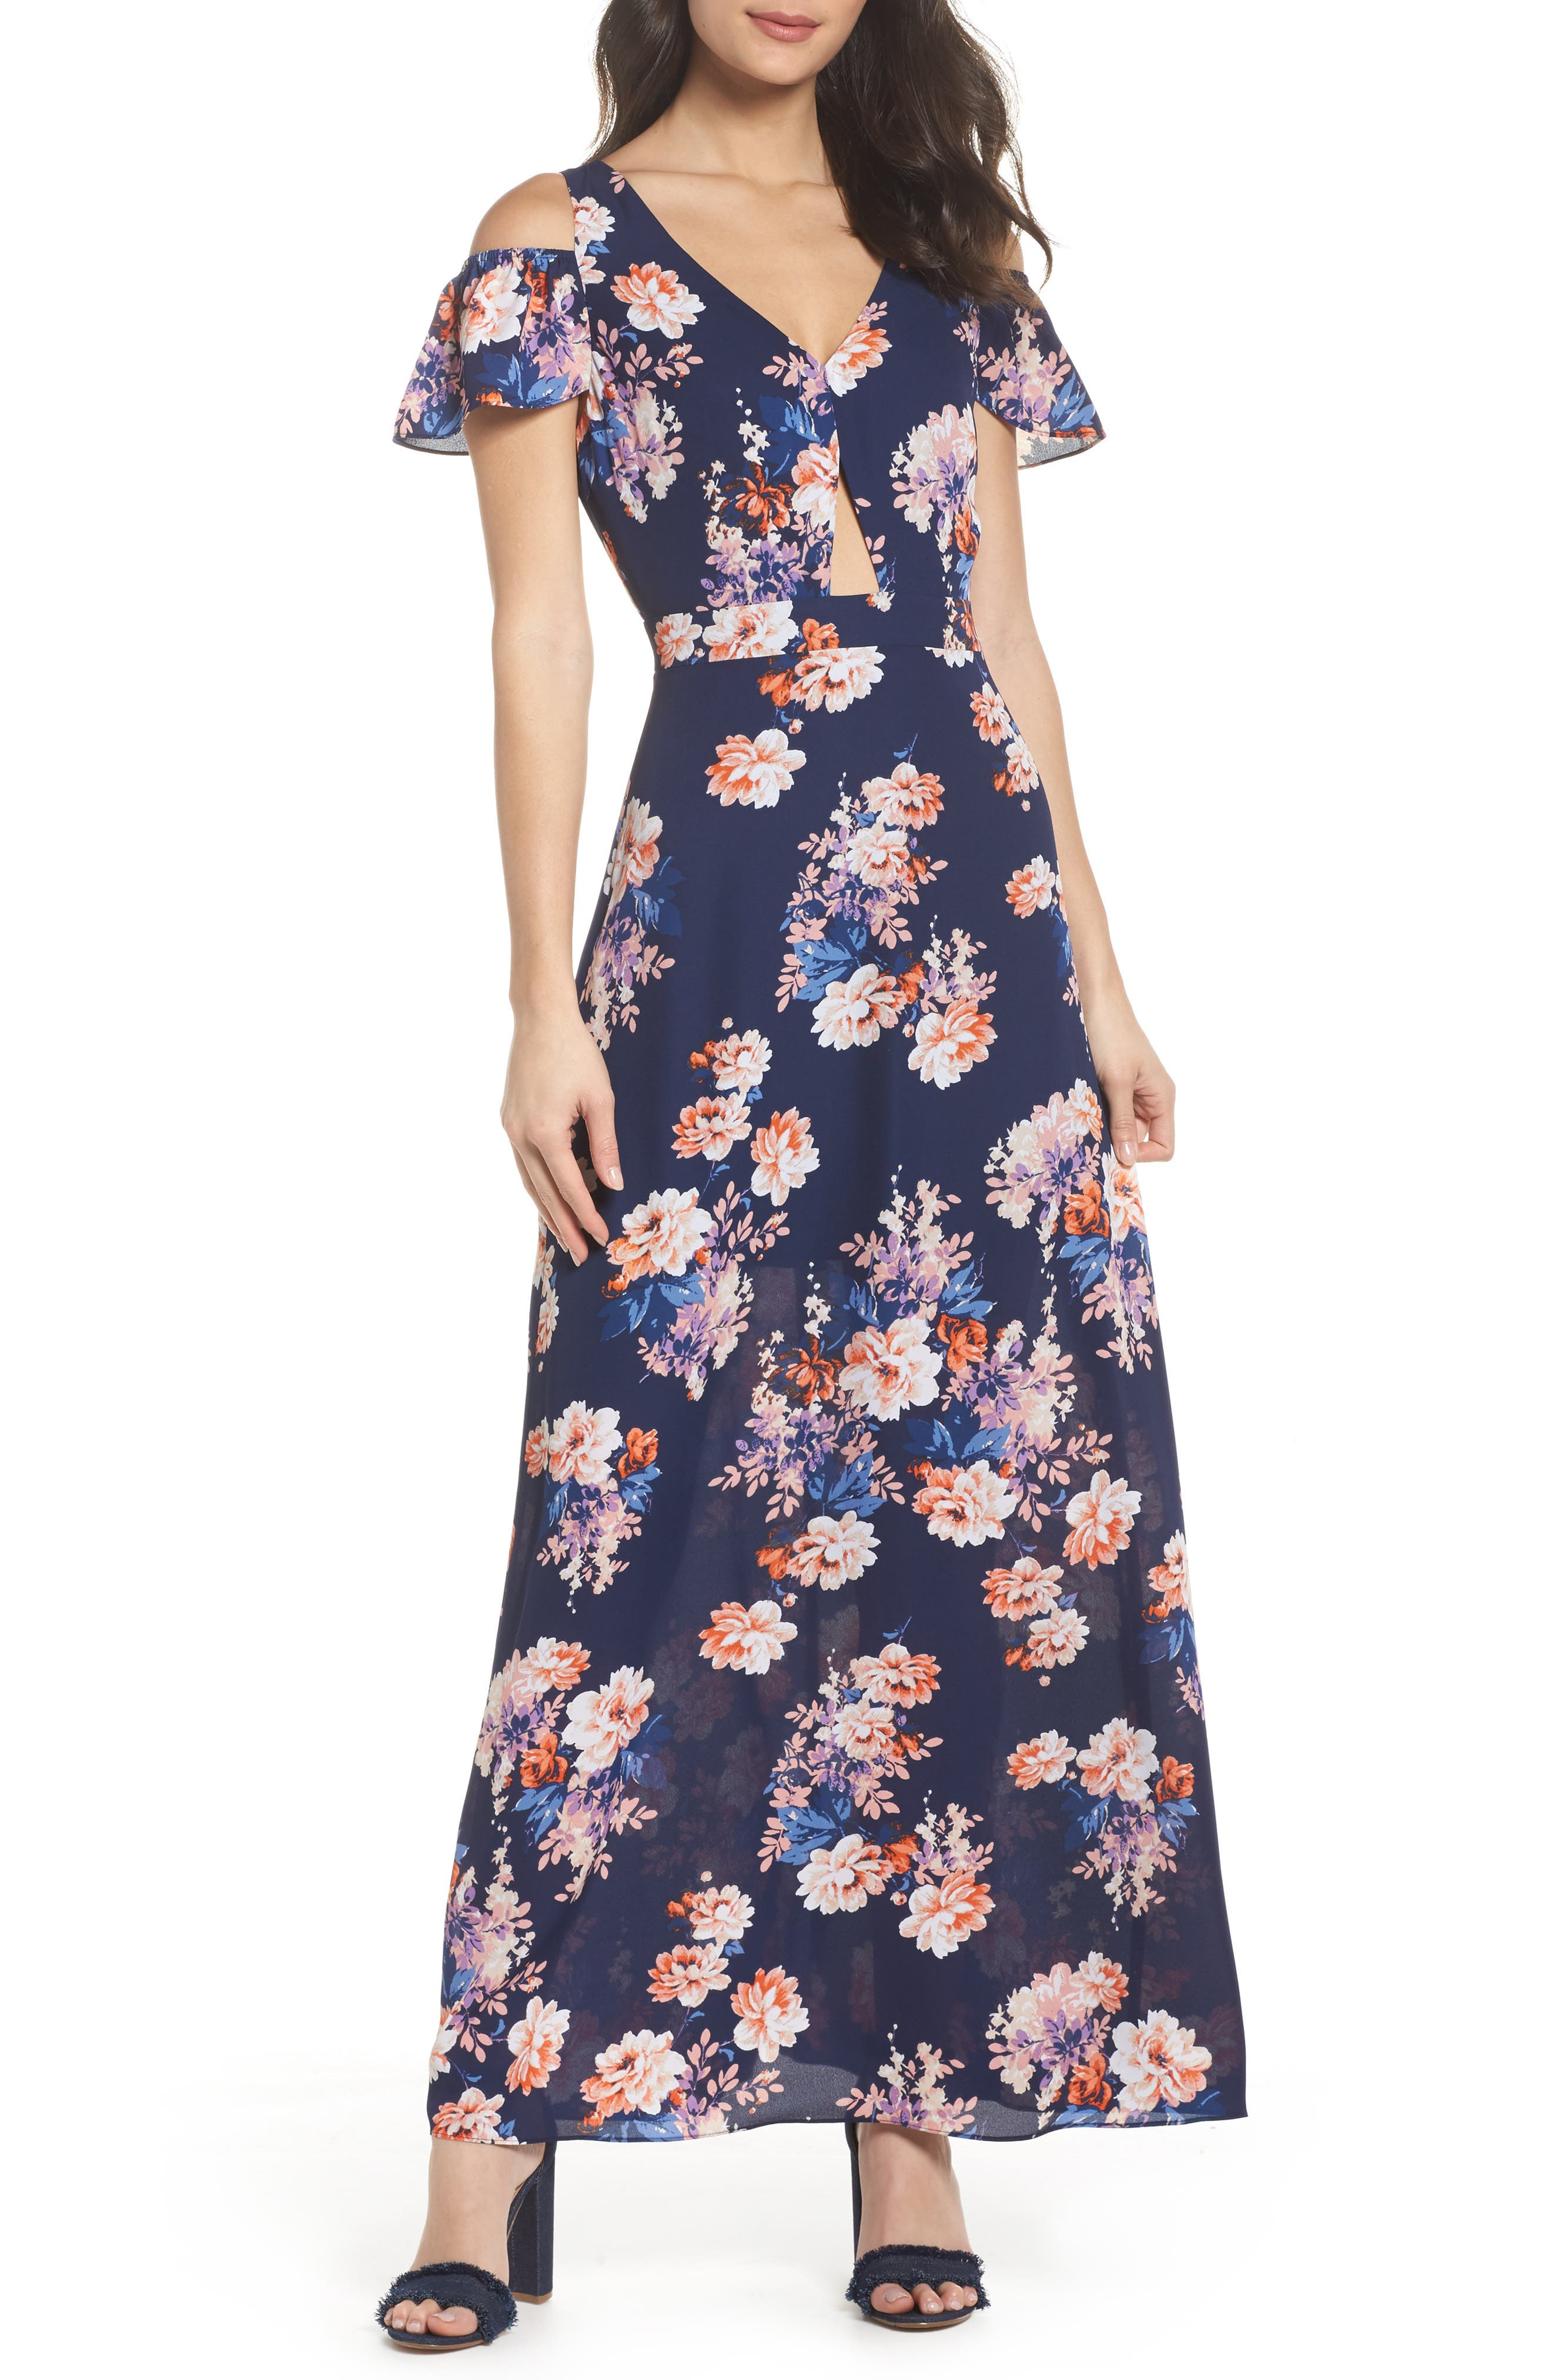 Alternate Image 1 Selected - Ali & Jay Chasing Butterflies Maxi Dress (Nordstrom Exclusive)